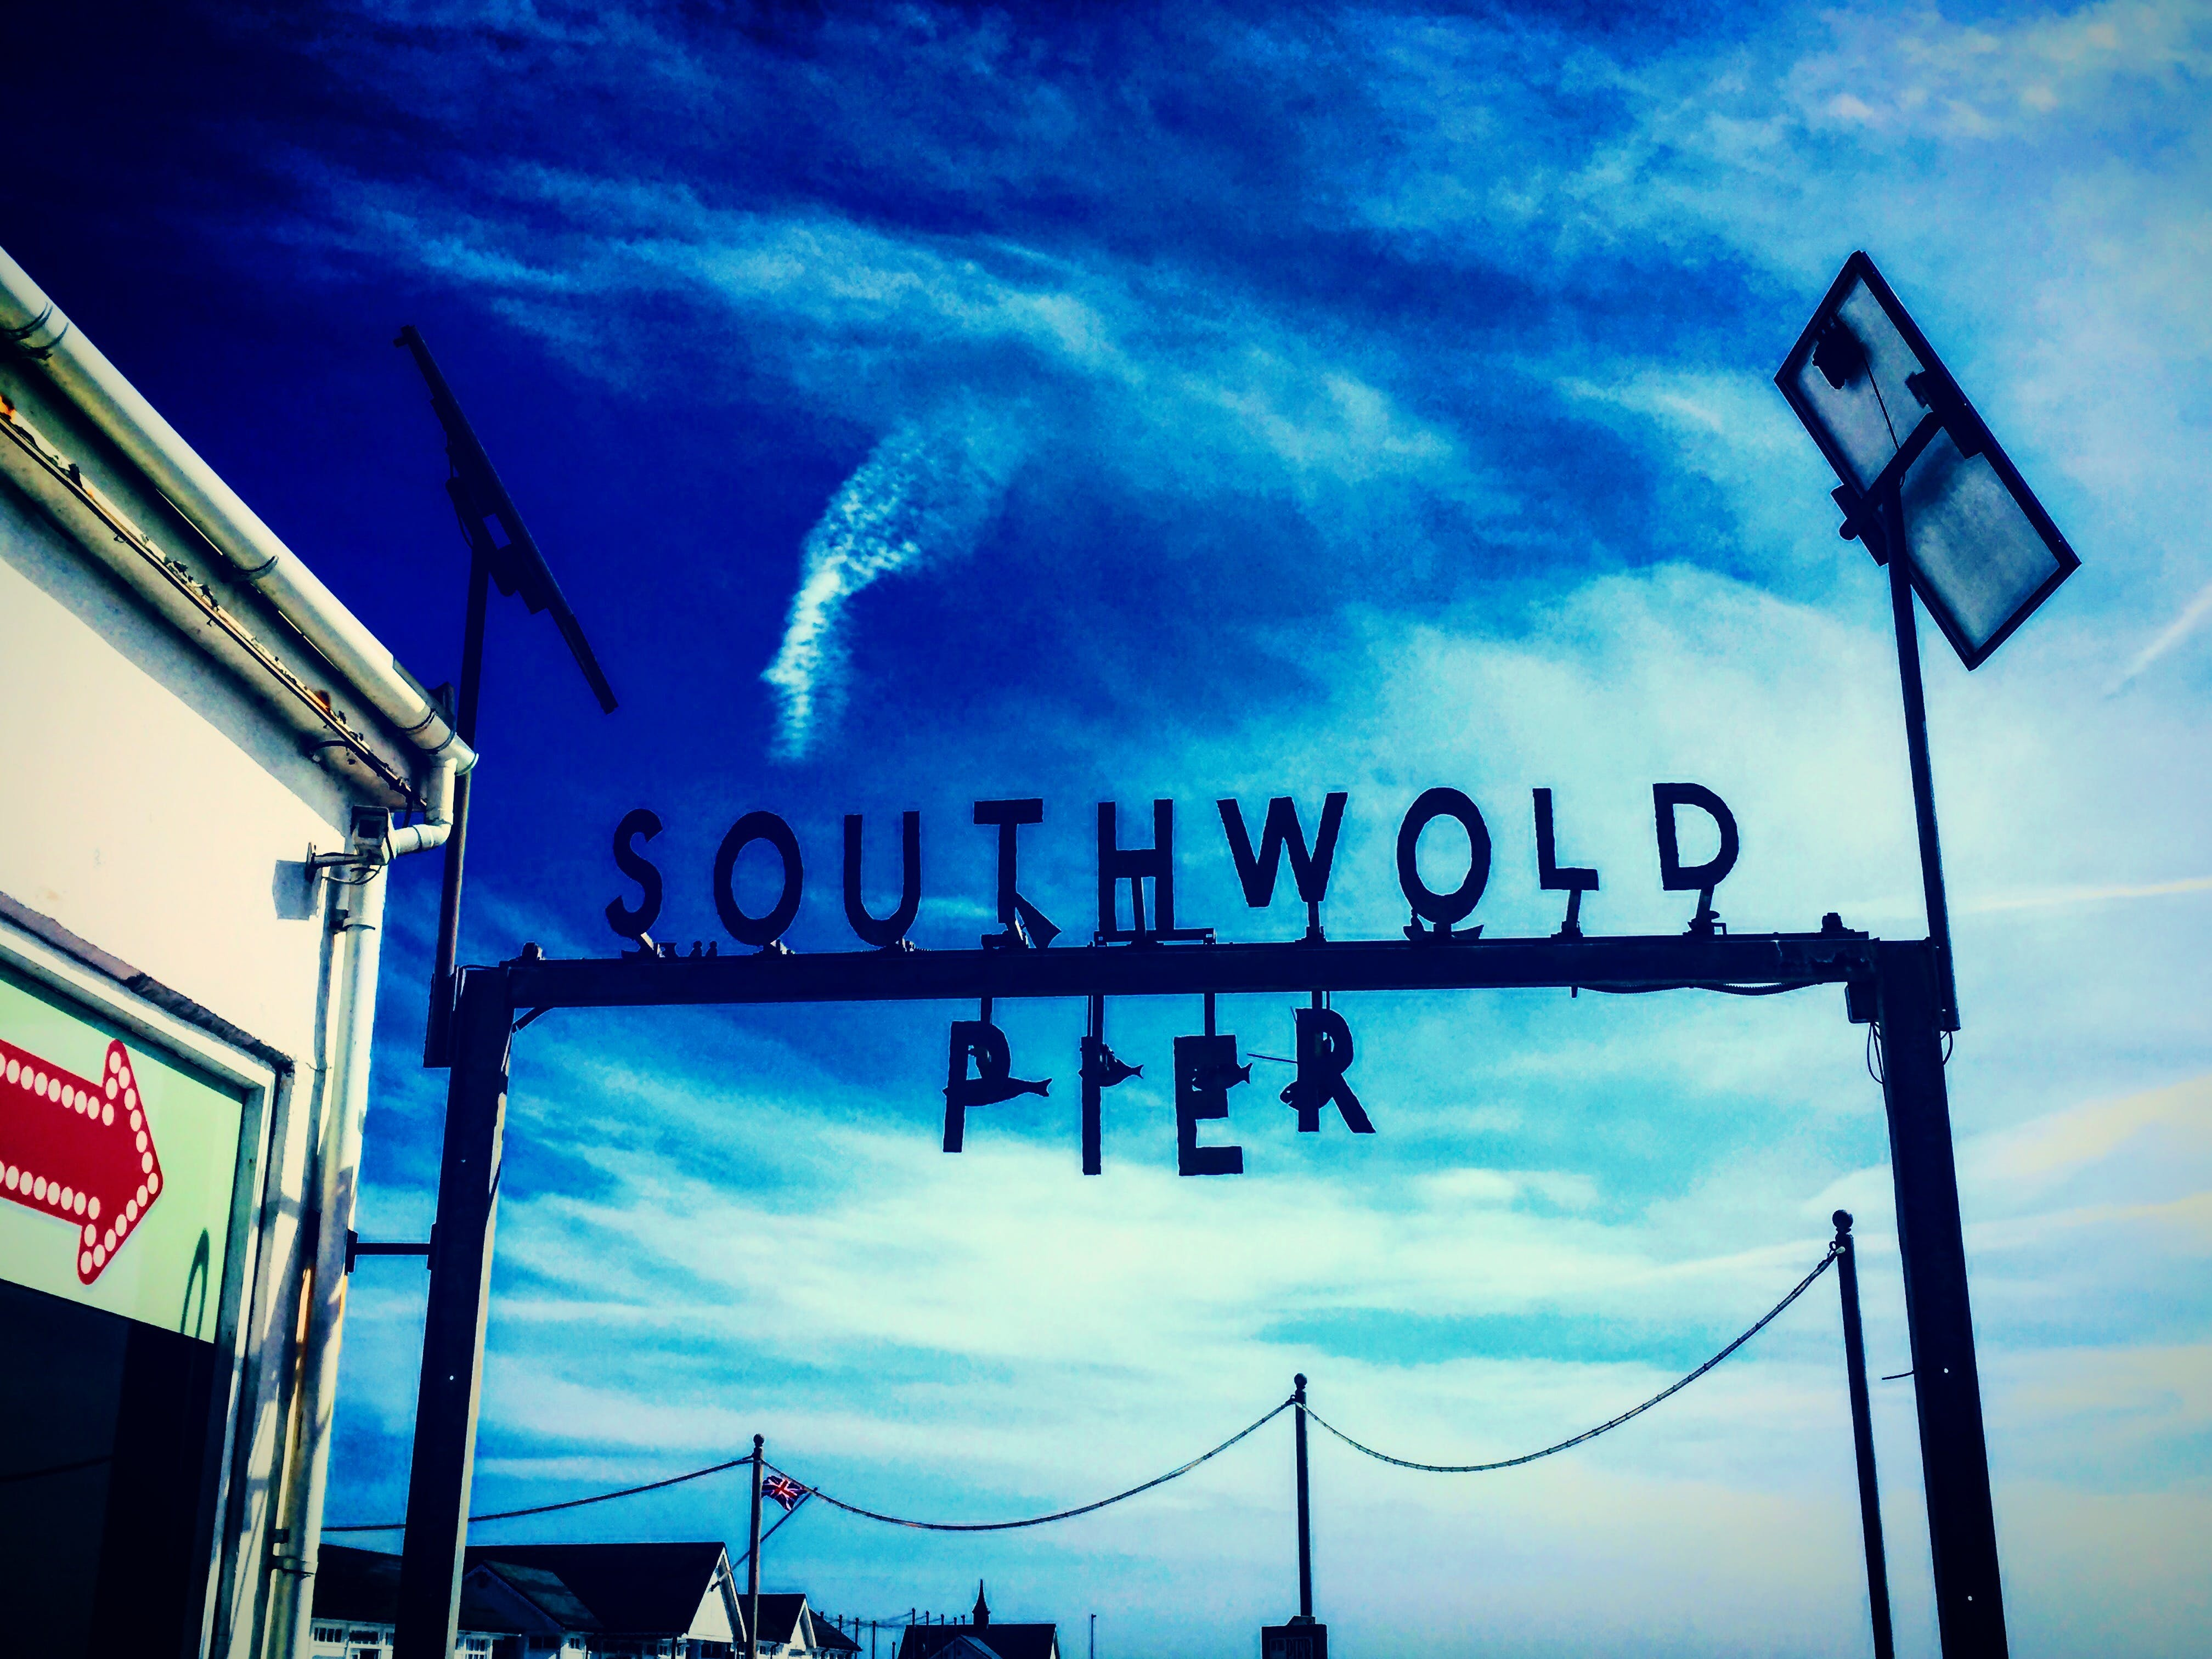 Free stock photo of pier, Southwold